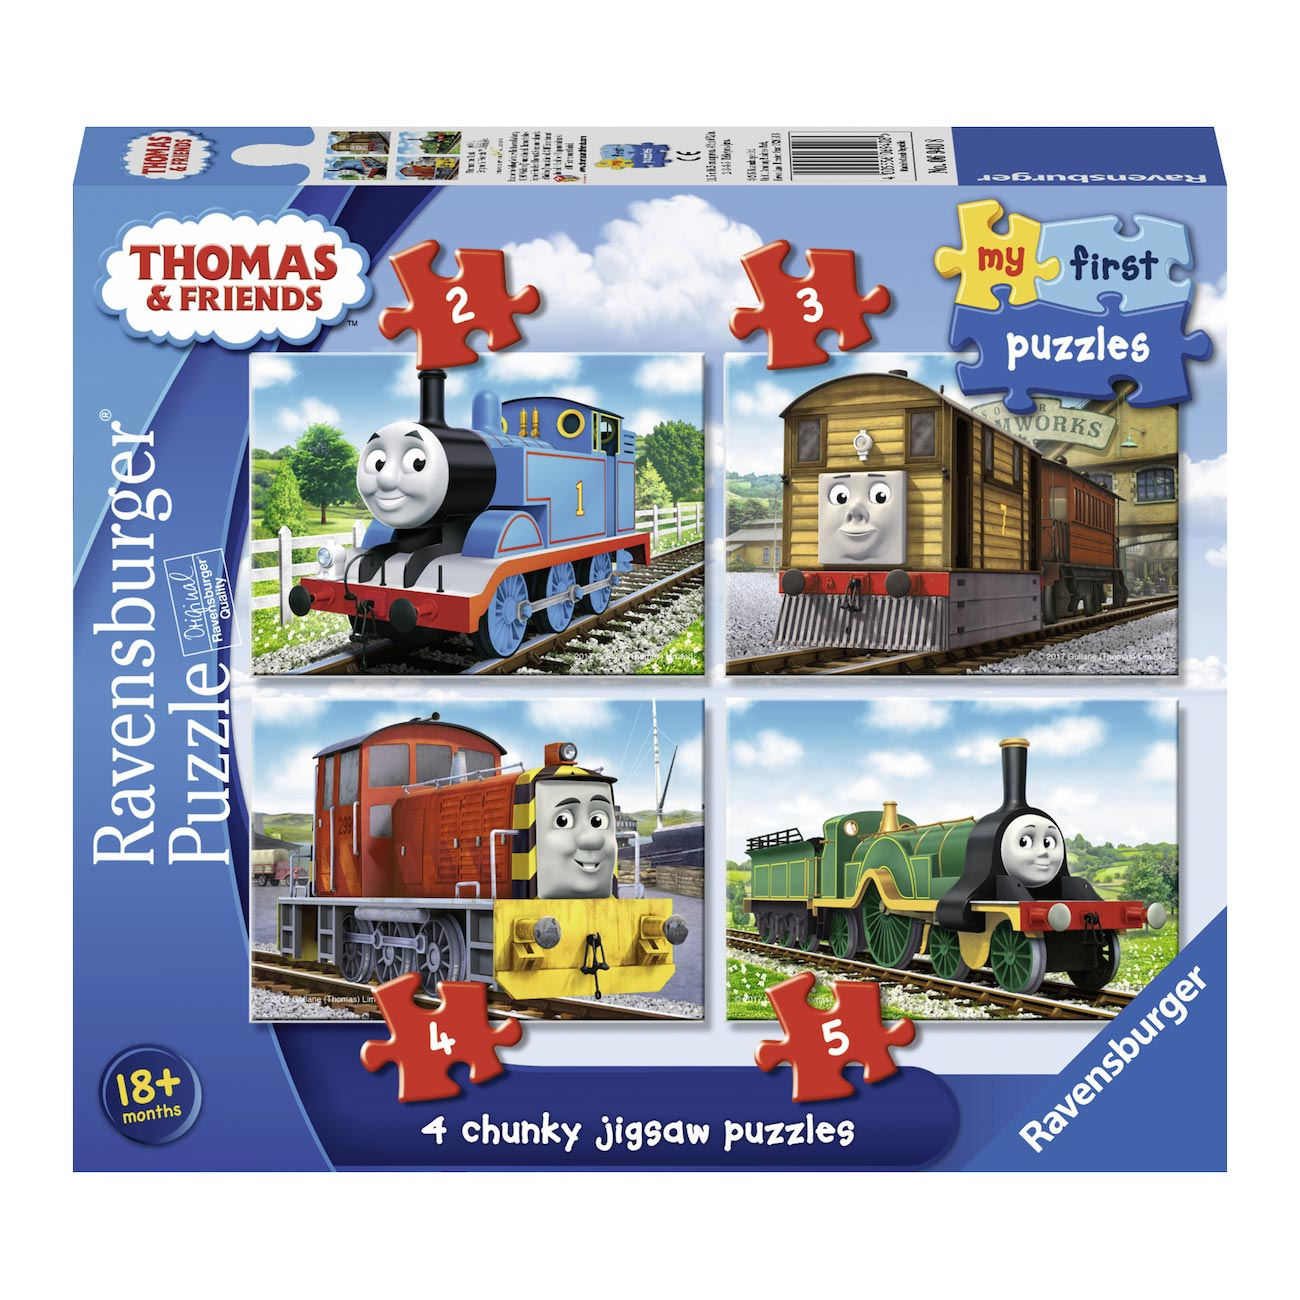 Thomas & Friends Puzzel, 4in1